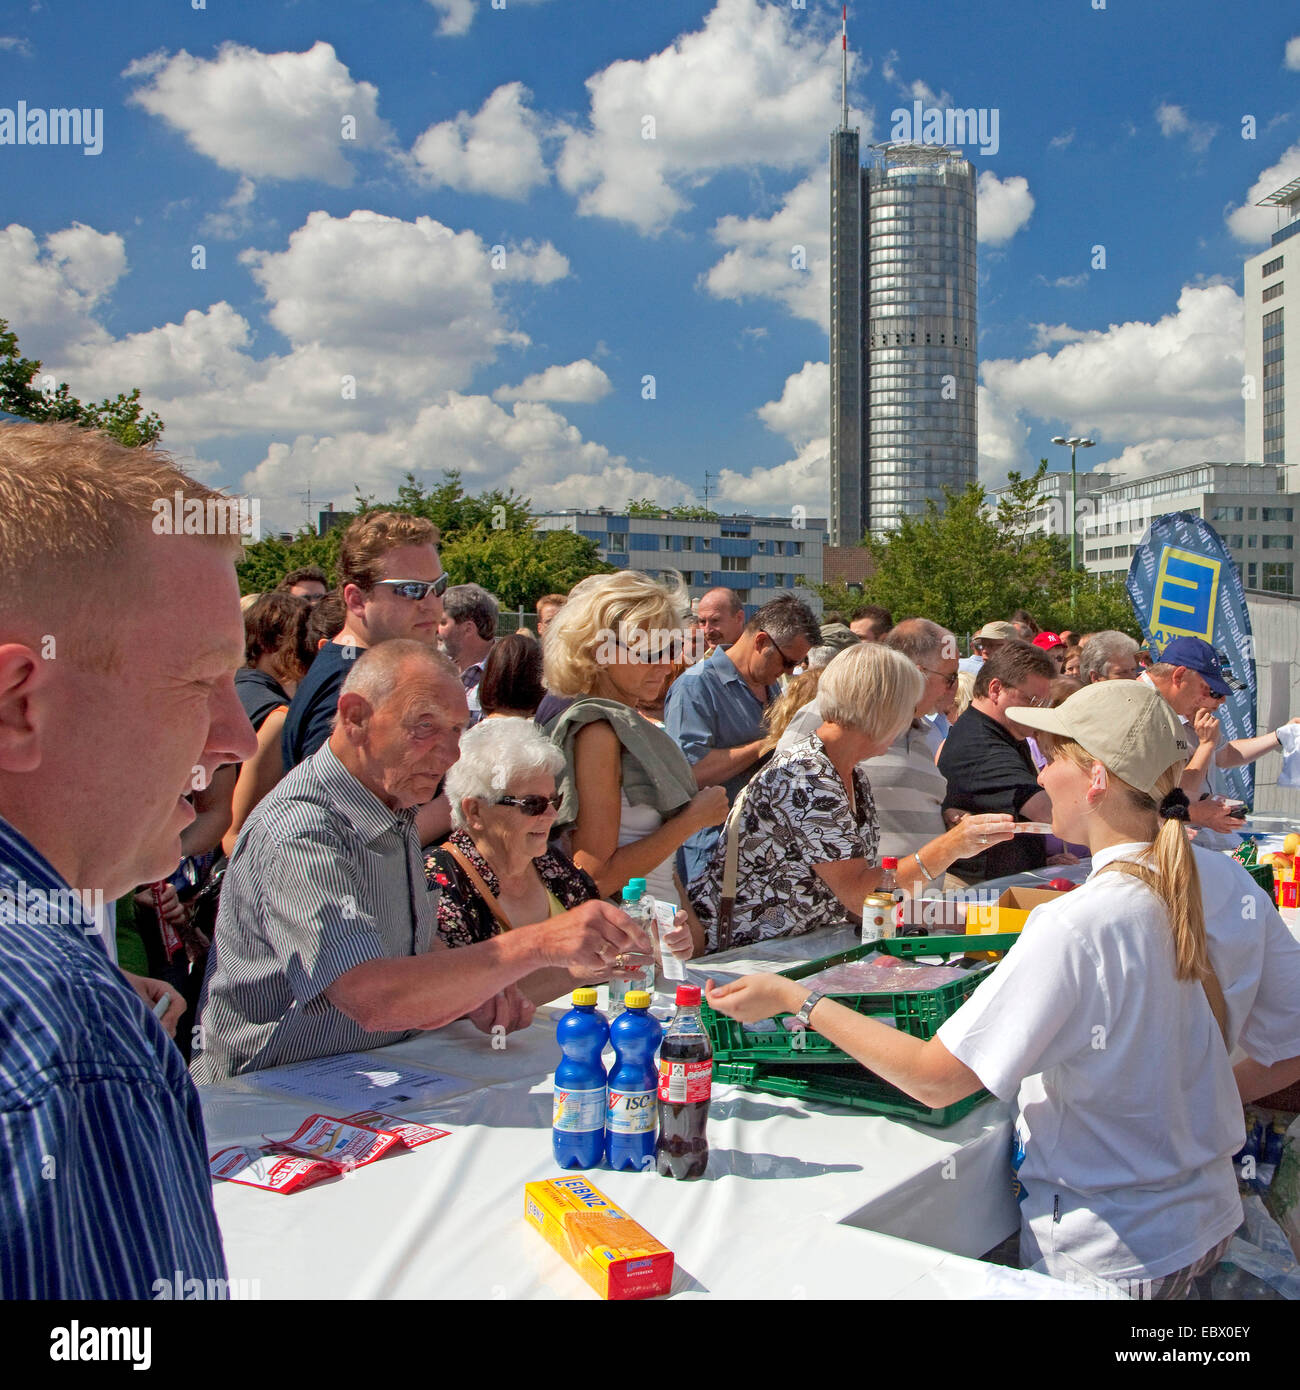 booth at the event 'Still-Leben Ruhrschnellweg' on highway A 40, Germany, North Rhine-Westphalia, Ruhr Area, - Stock Image